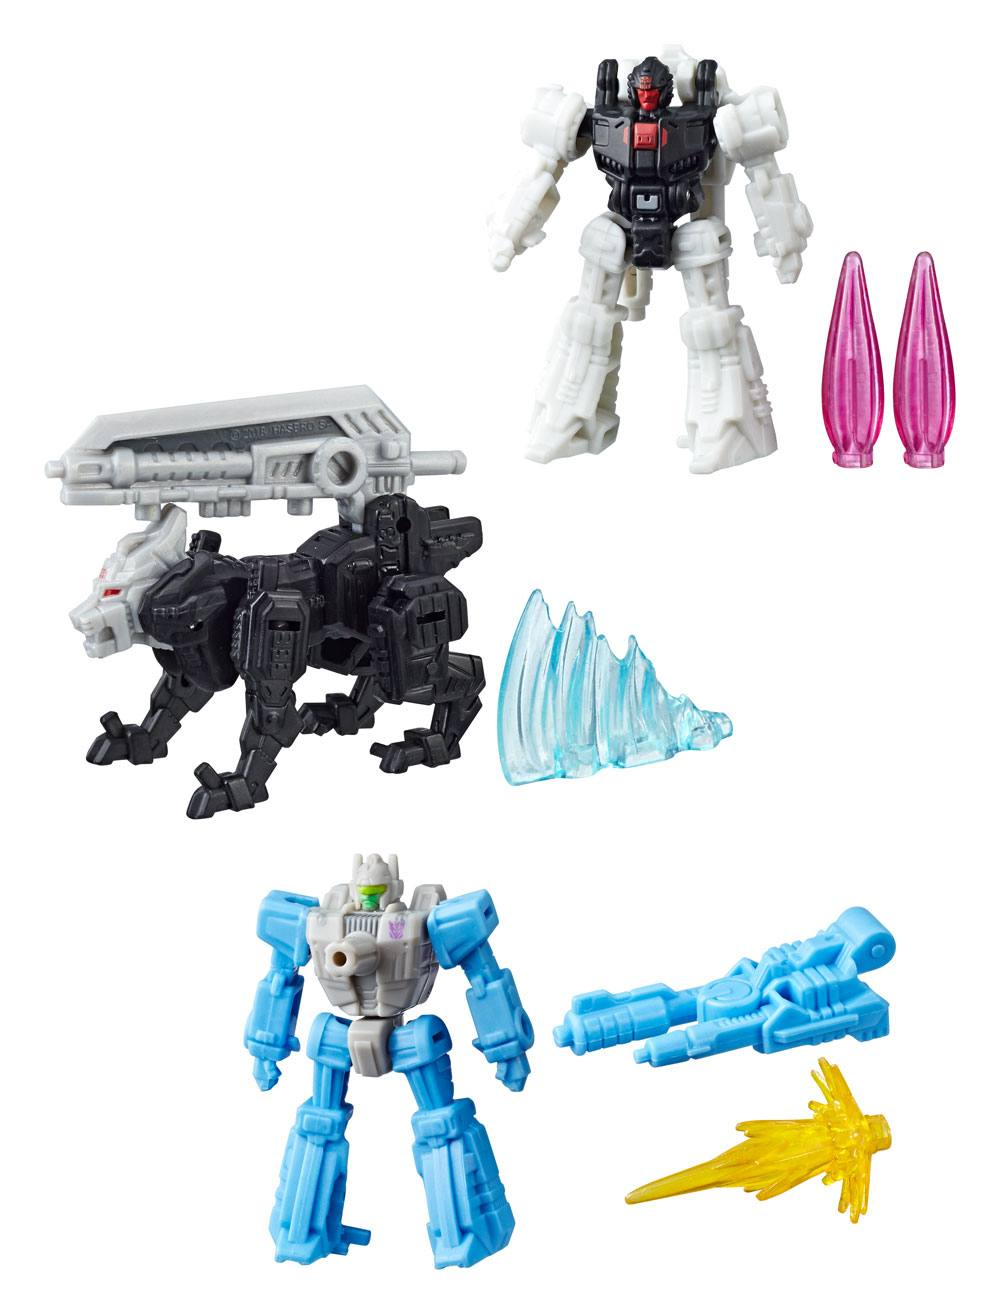 Transformers Generations War for Cybertron: Siege Action Figures Battle Master W1 Assortment (12)